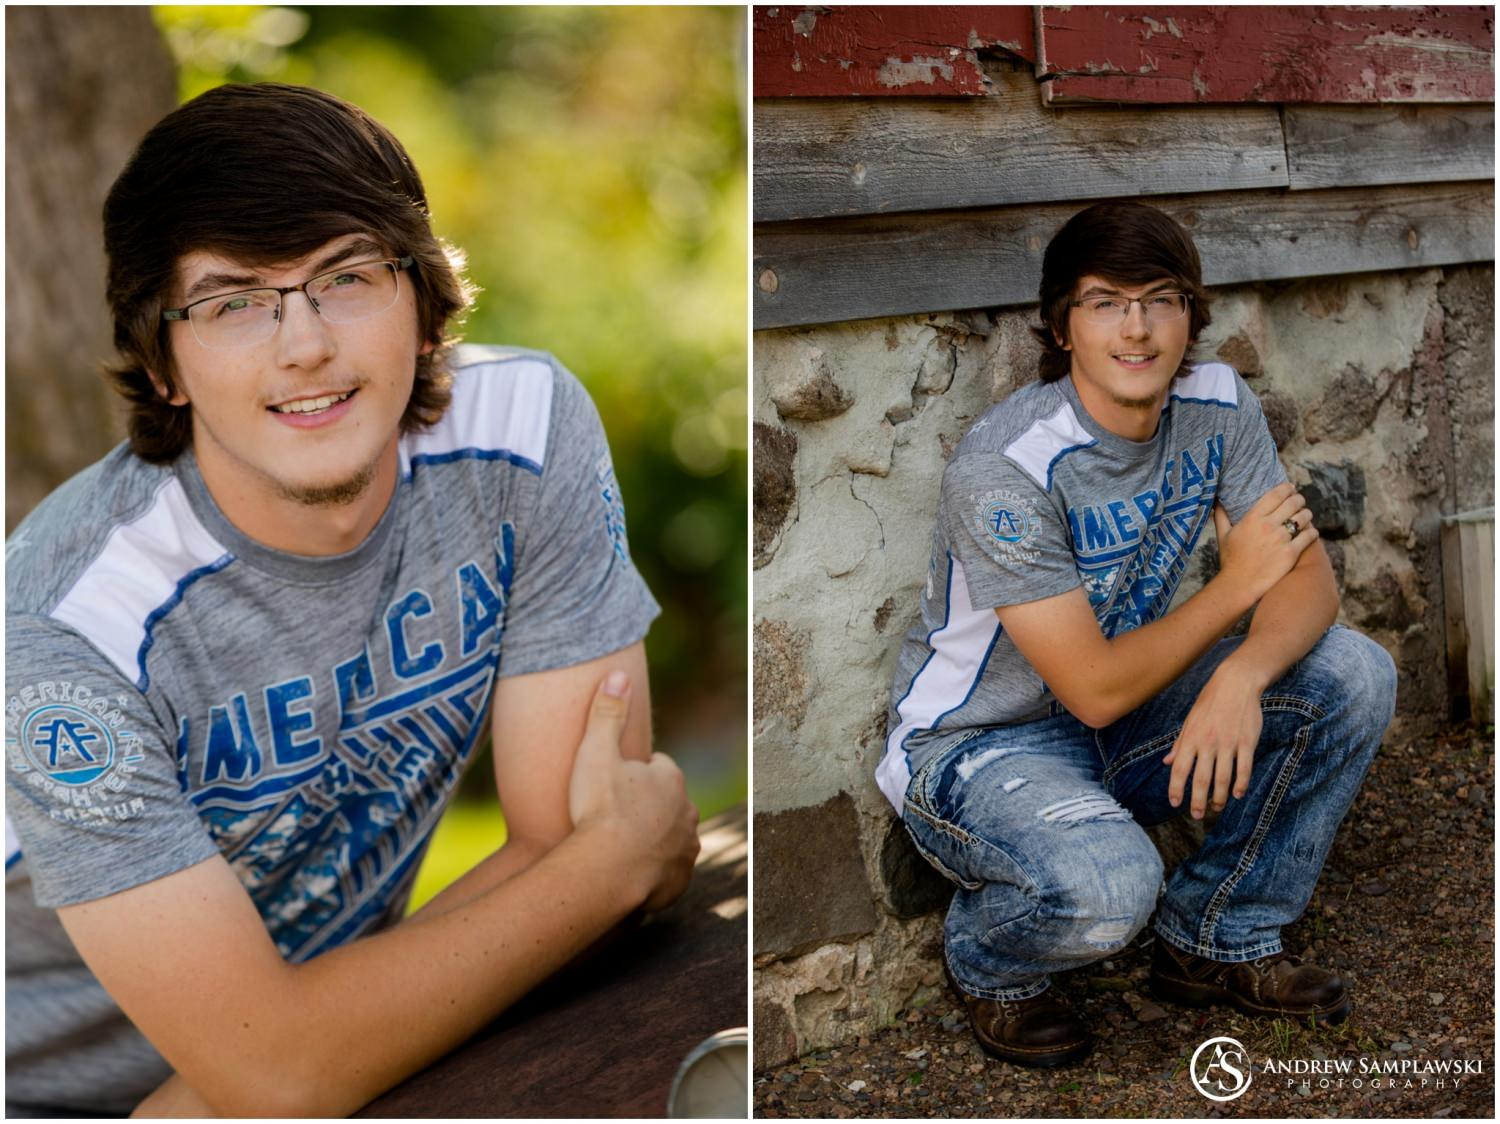 monson bridge senior session andrew samplawski